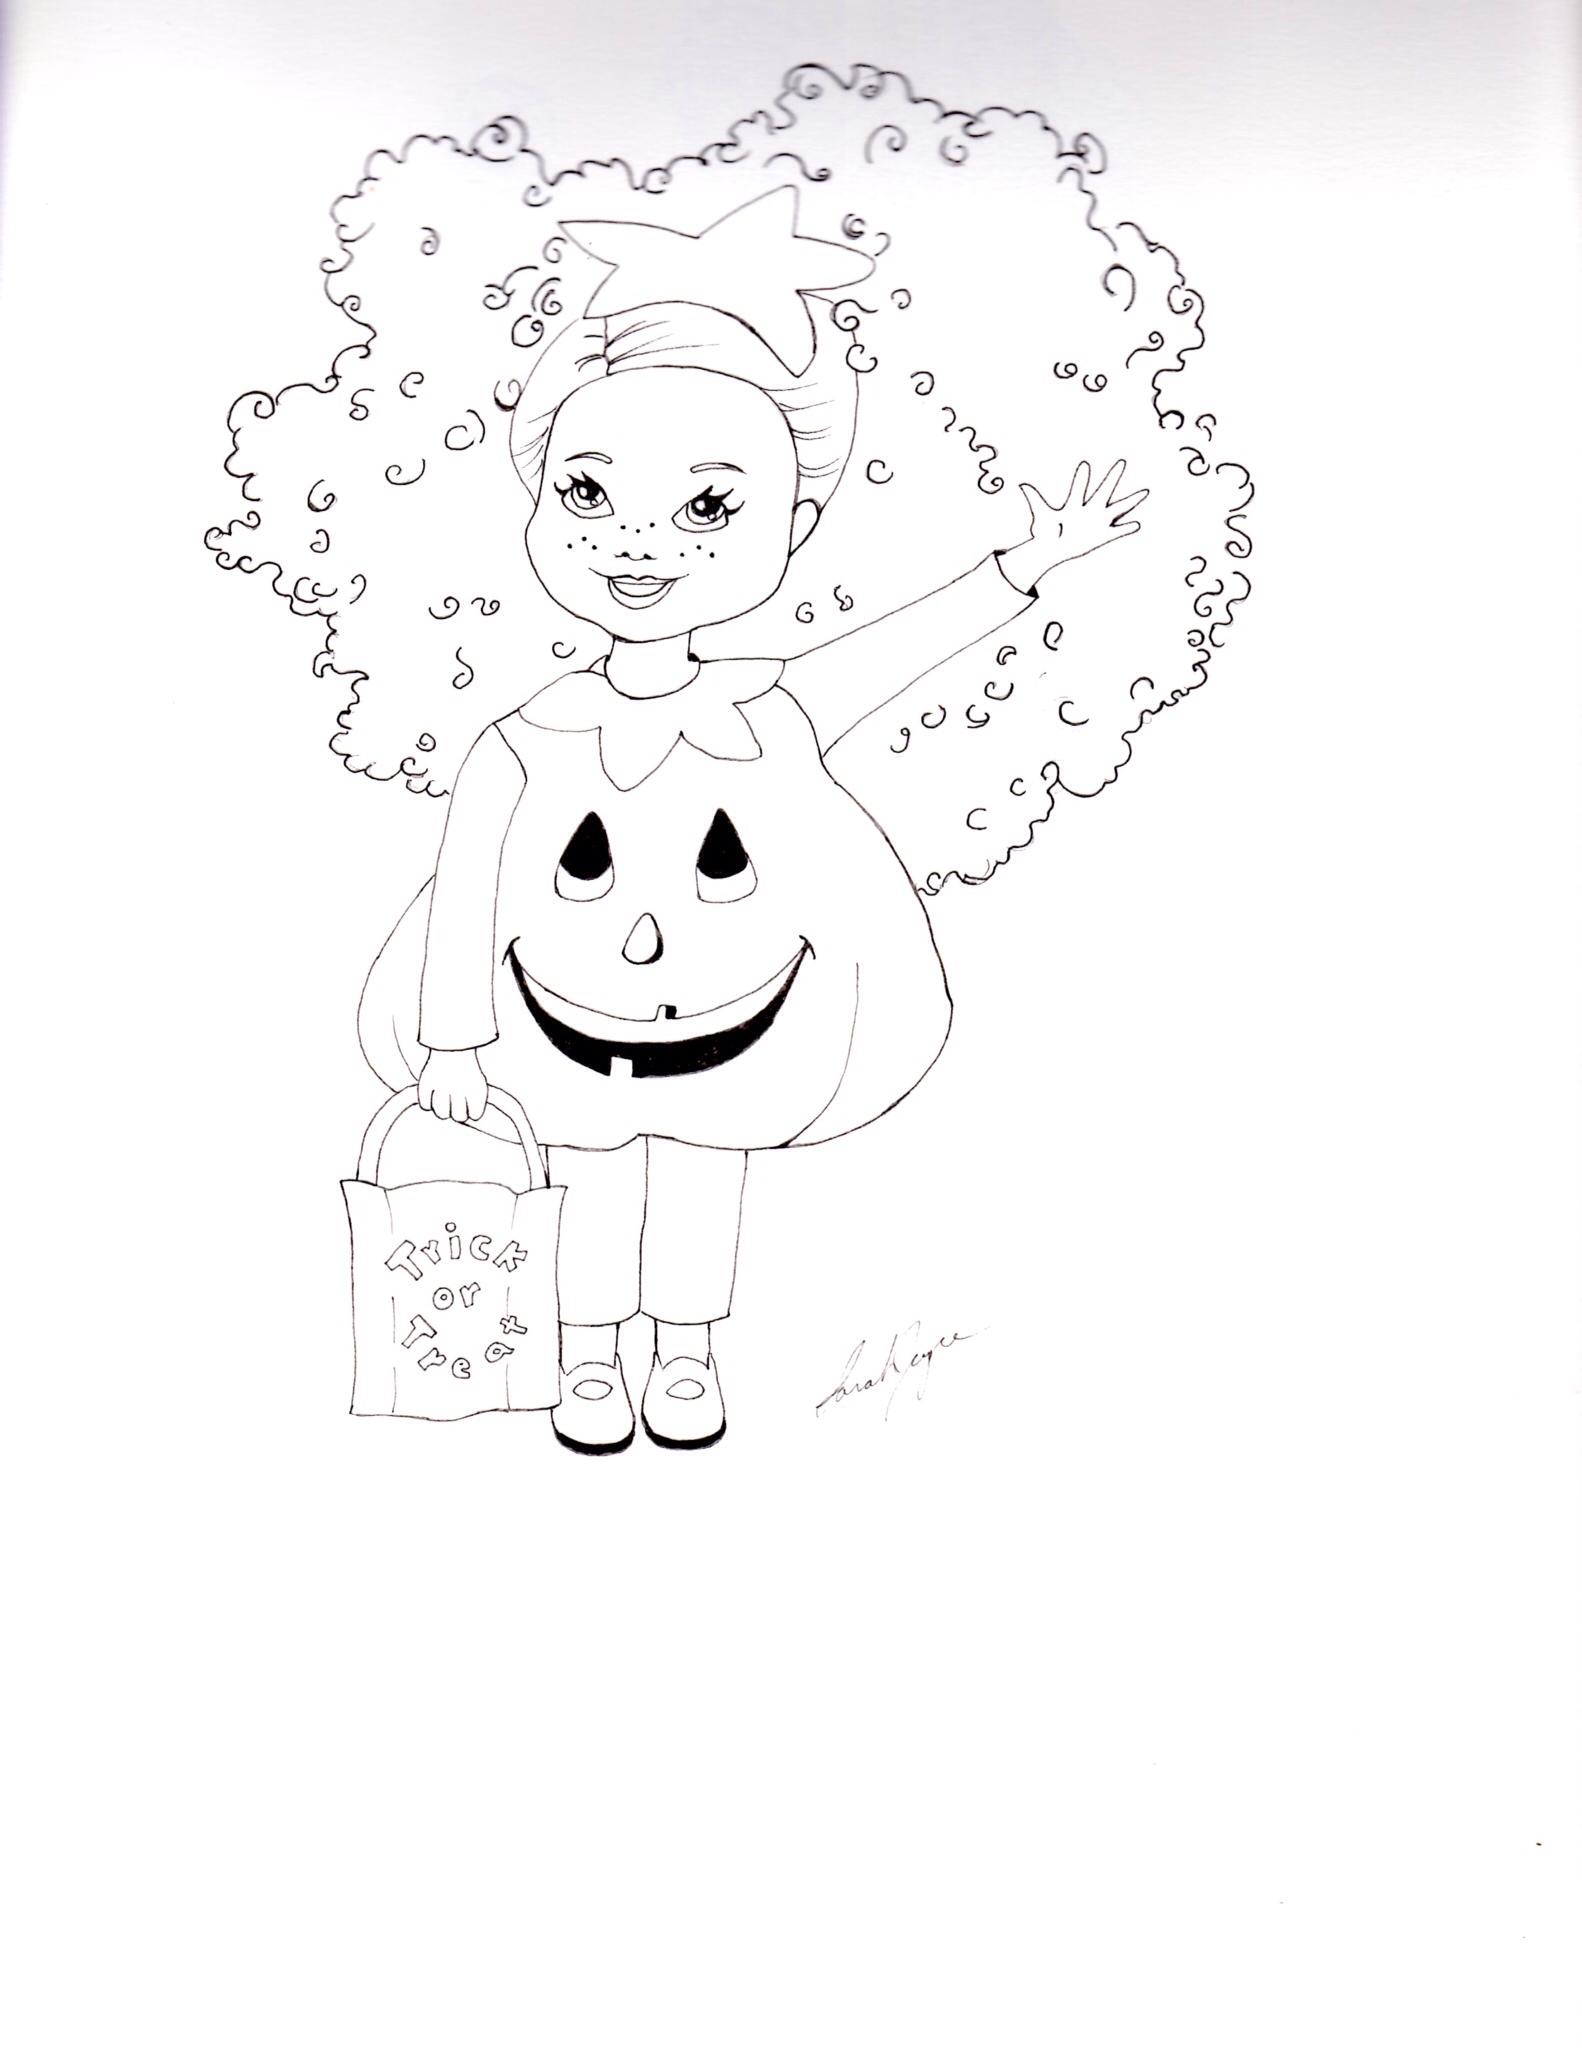 barbie kelly coloring pages - photo#16